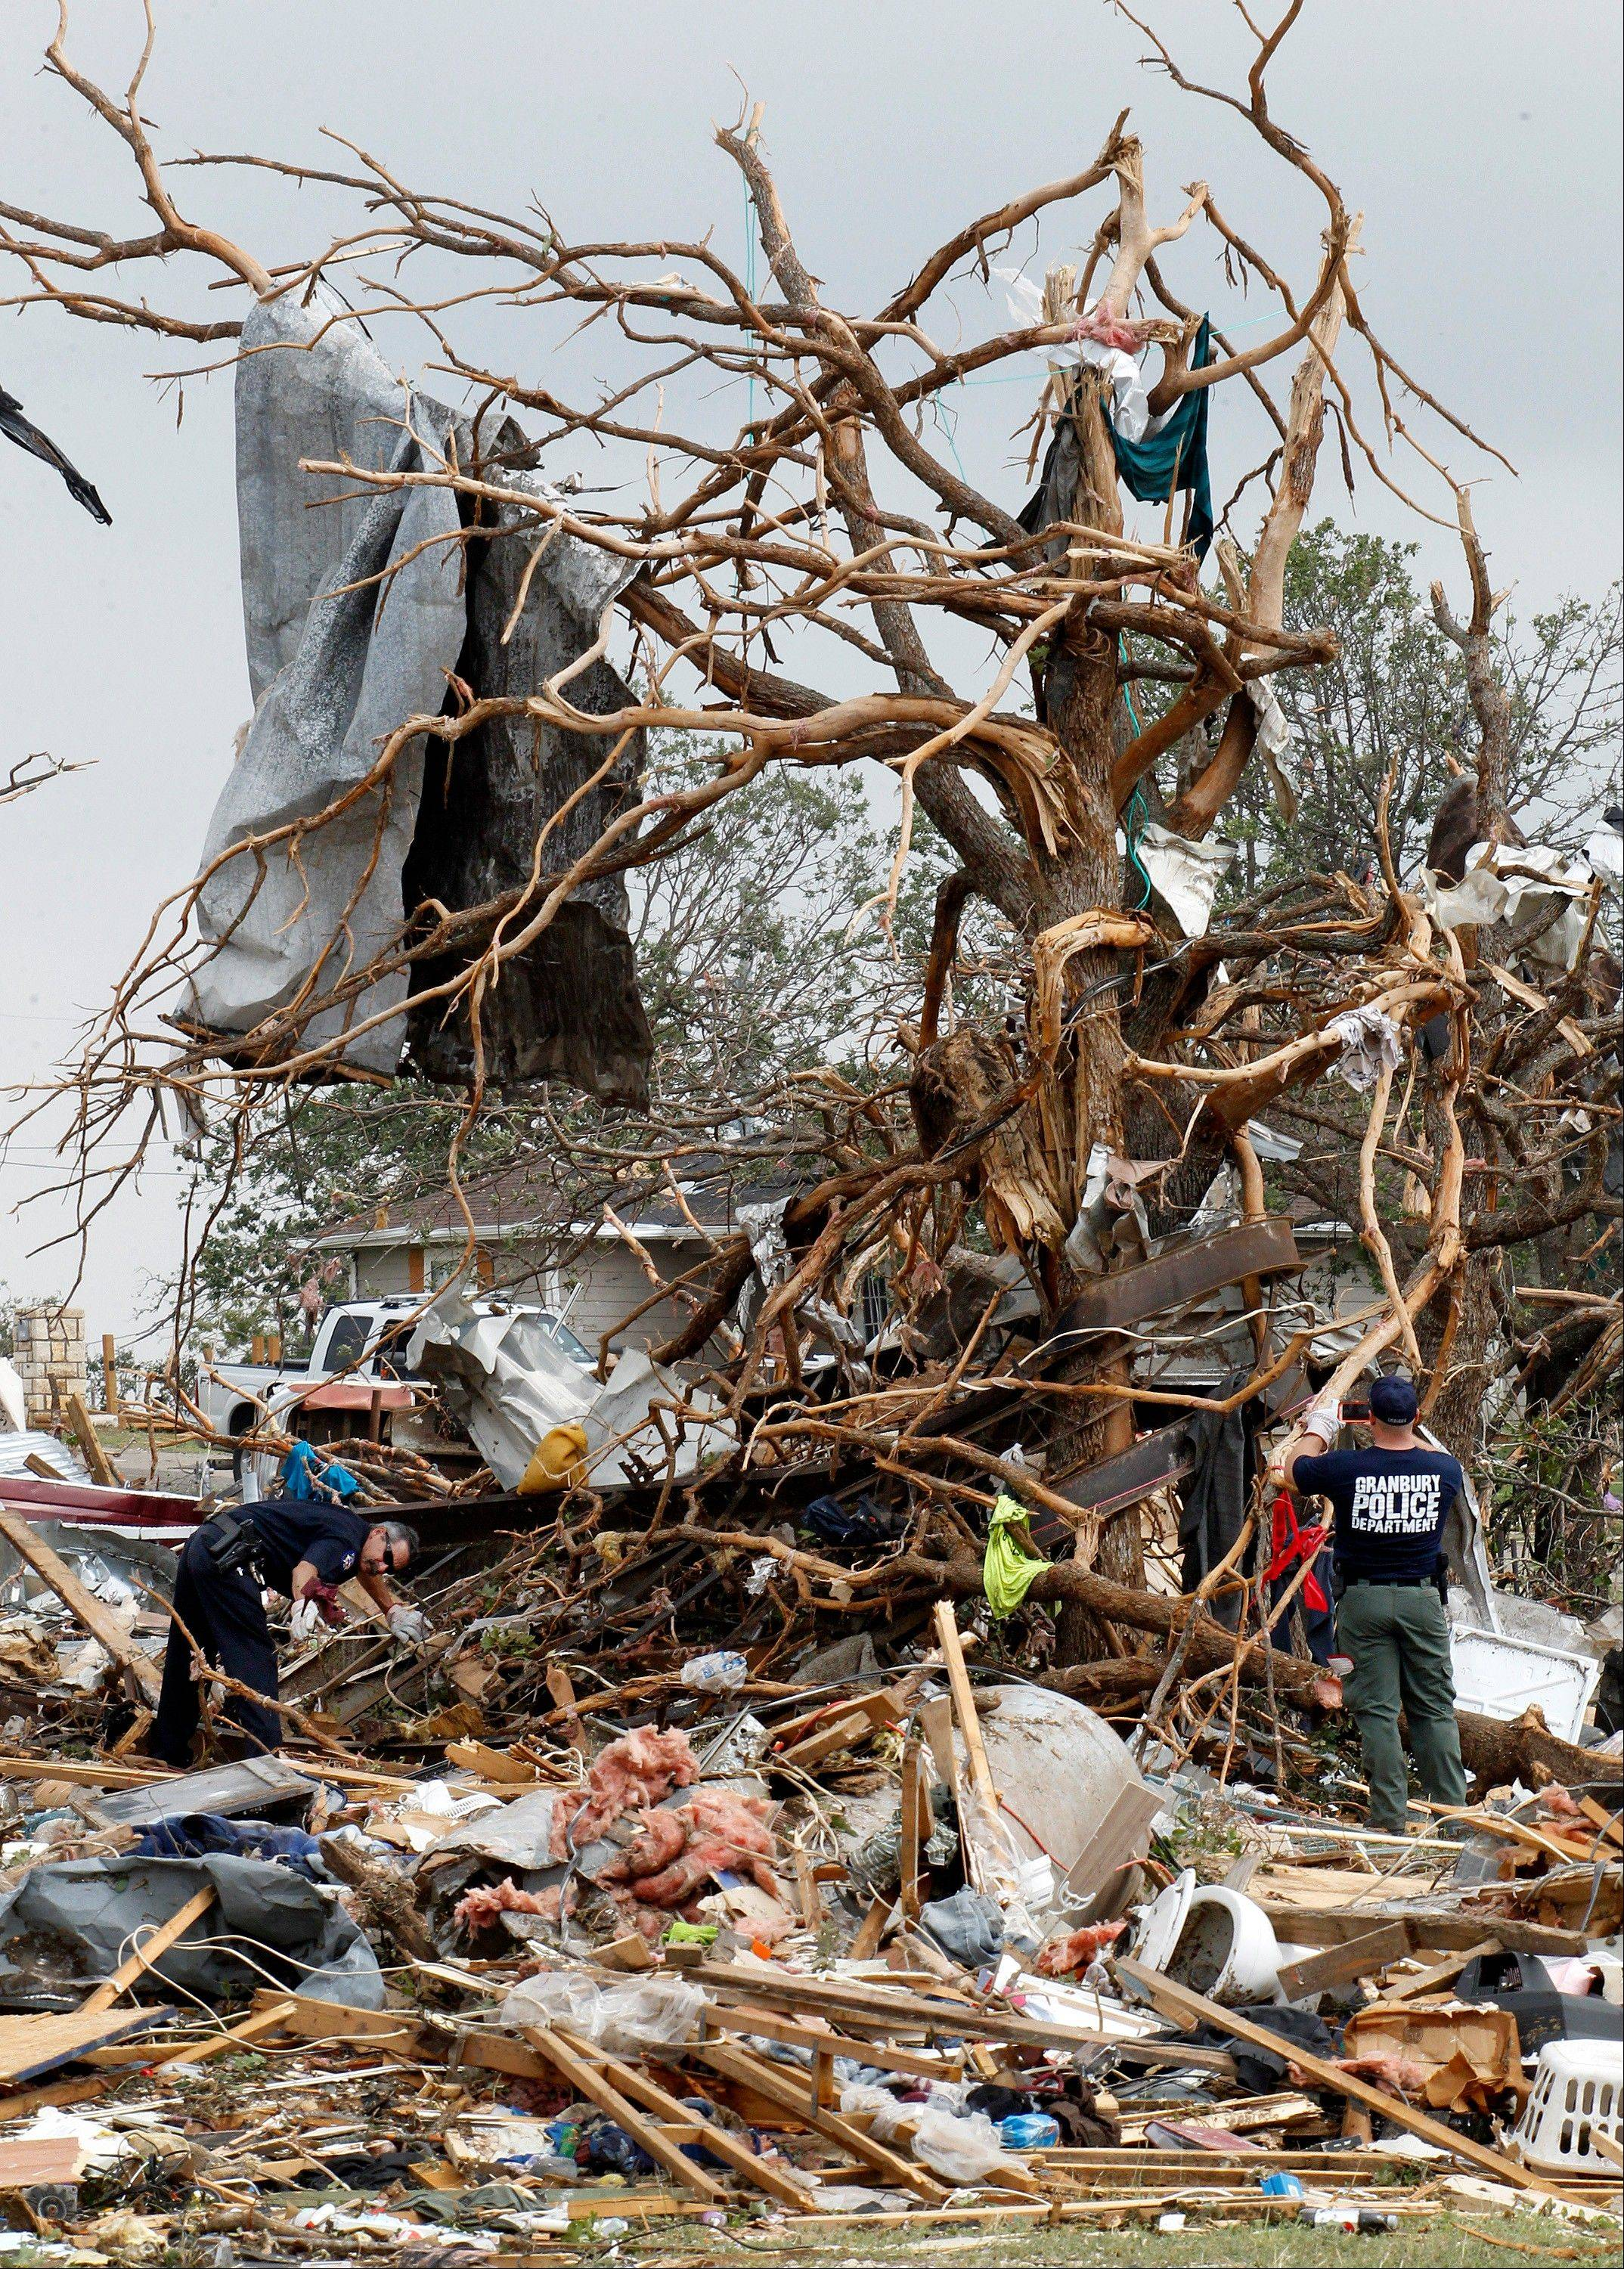 Searchers working the Rancho Brazos neighborhood in Granbury, Texas, look for unaccounted residents, Thursday, May 16, 2013. A rash of tornadoes slammed into several small communities in North Texas overnight, leaving at least six people dead, dozens more injured and hundreds homeless.